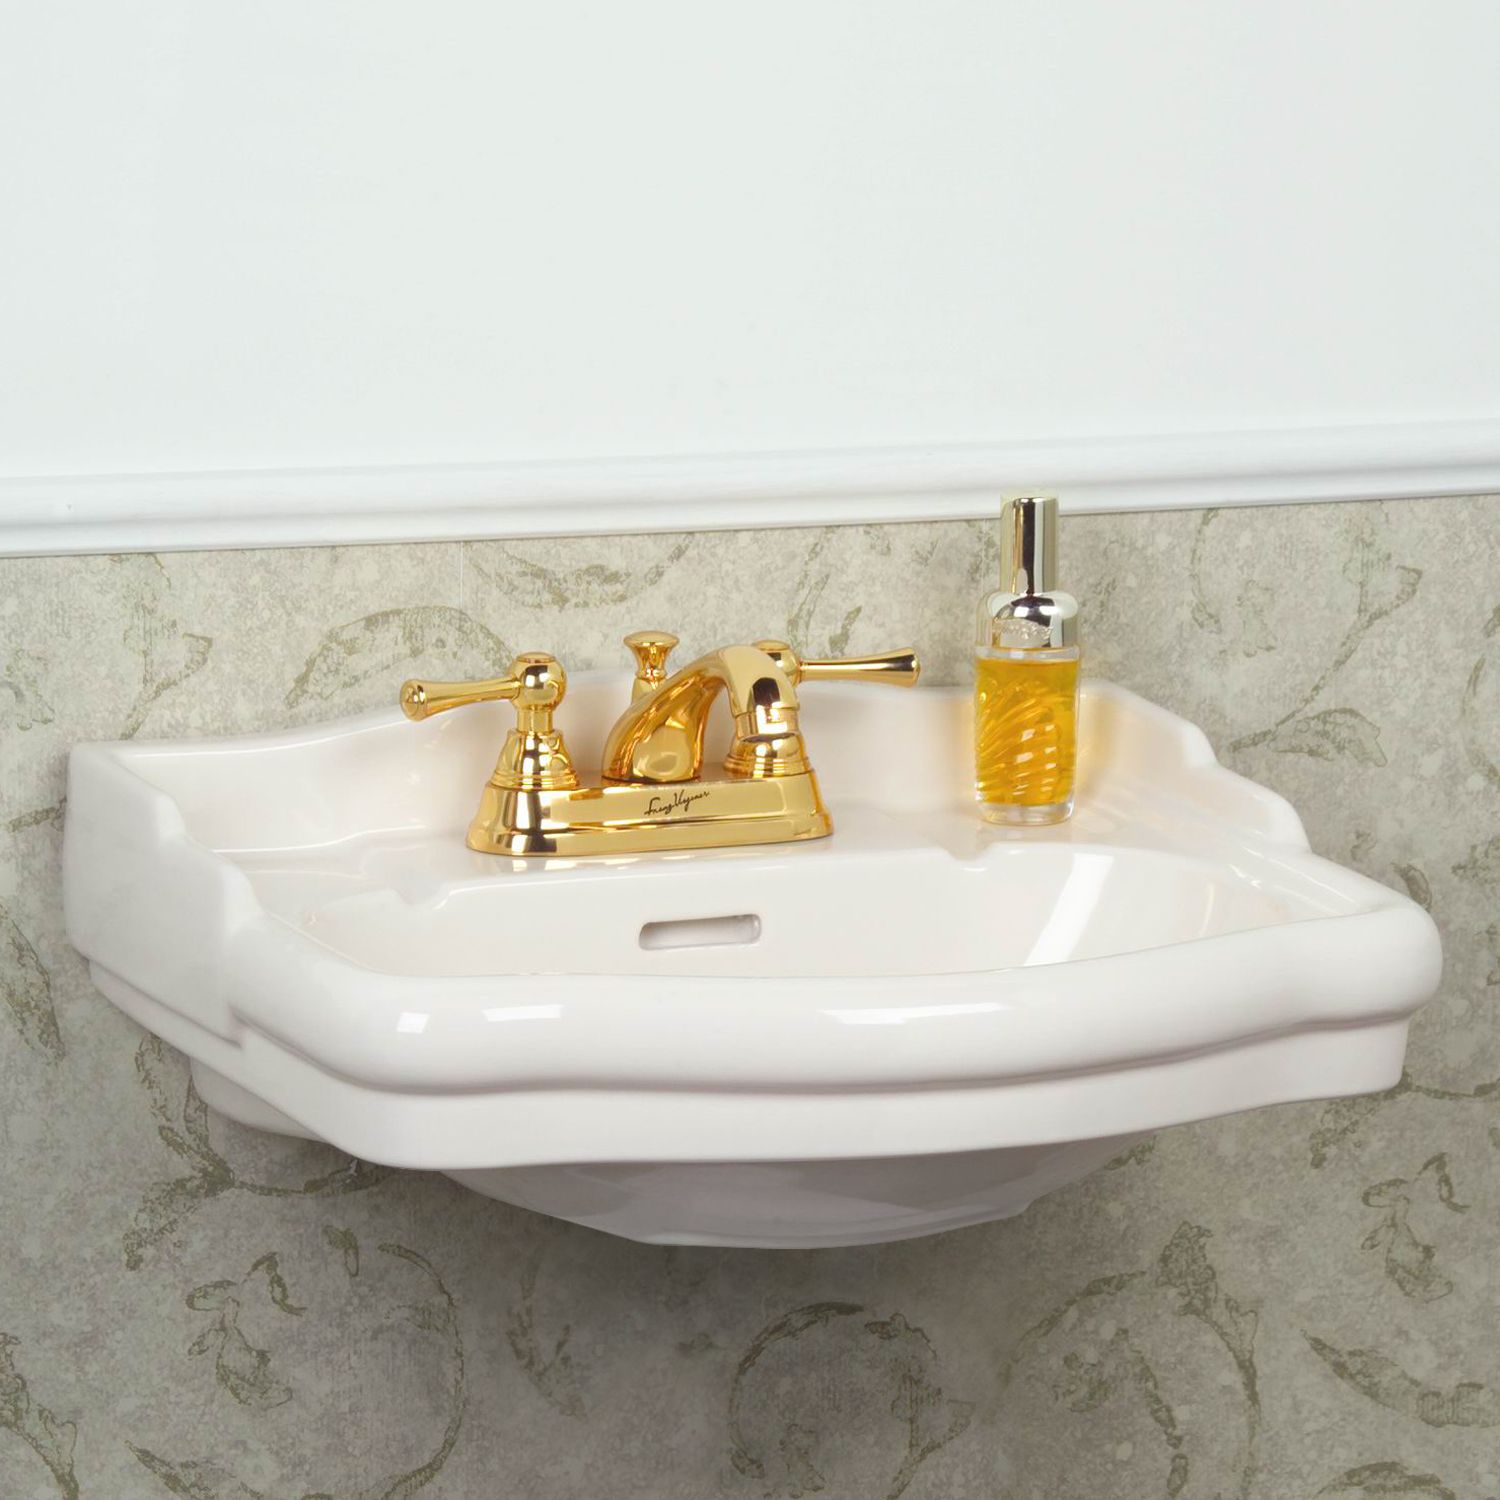 Small wall mount sink with towel bar for bathroom - Small Wall Mount Sink With Towel Bar For Bathroom 9